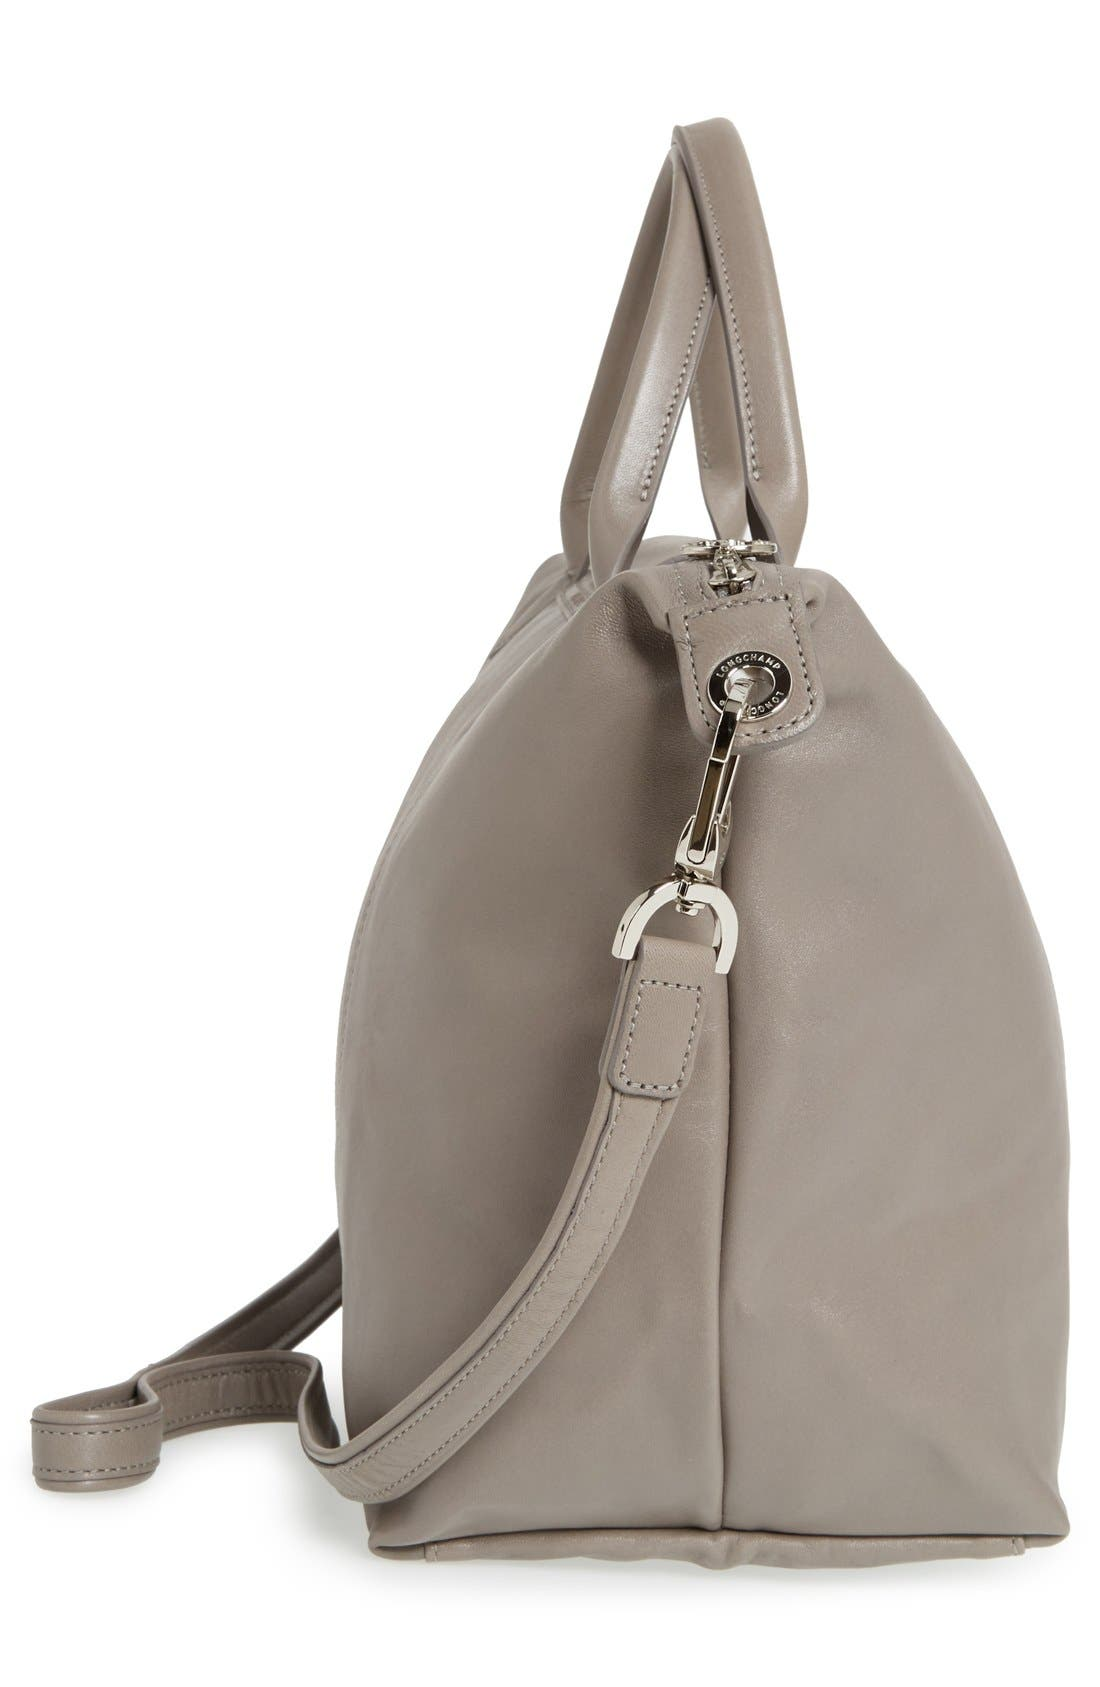 Medium 'Le Pliage Cuir' Leather Top Handle Tote,                             Alternate thumbnail 92, color,